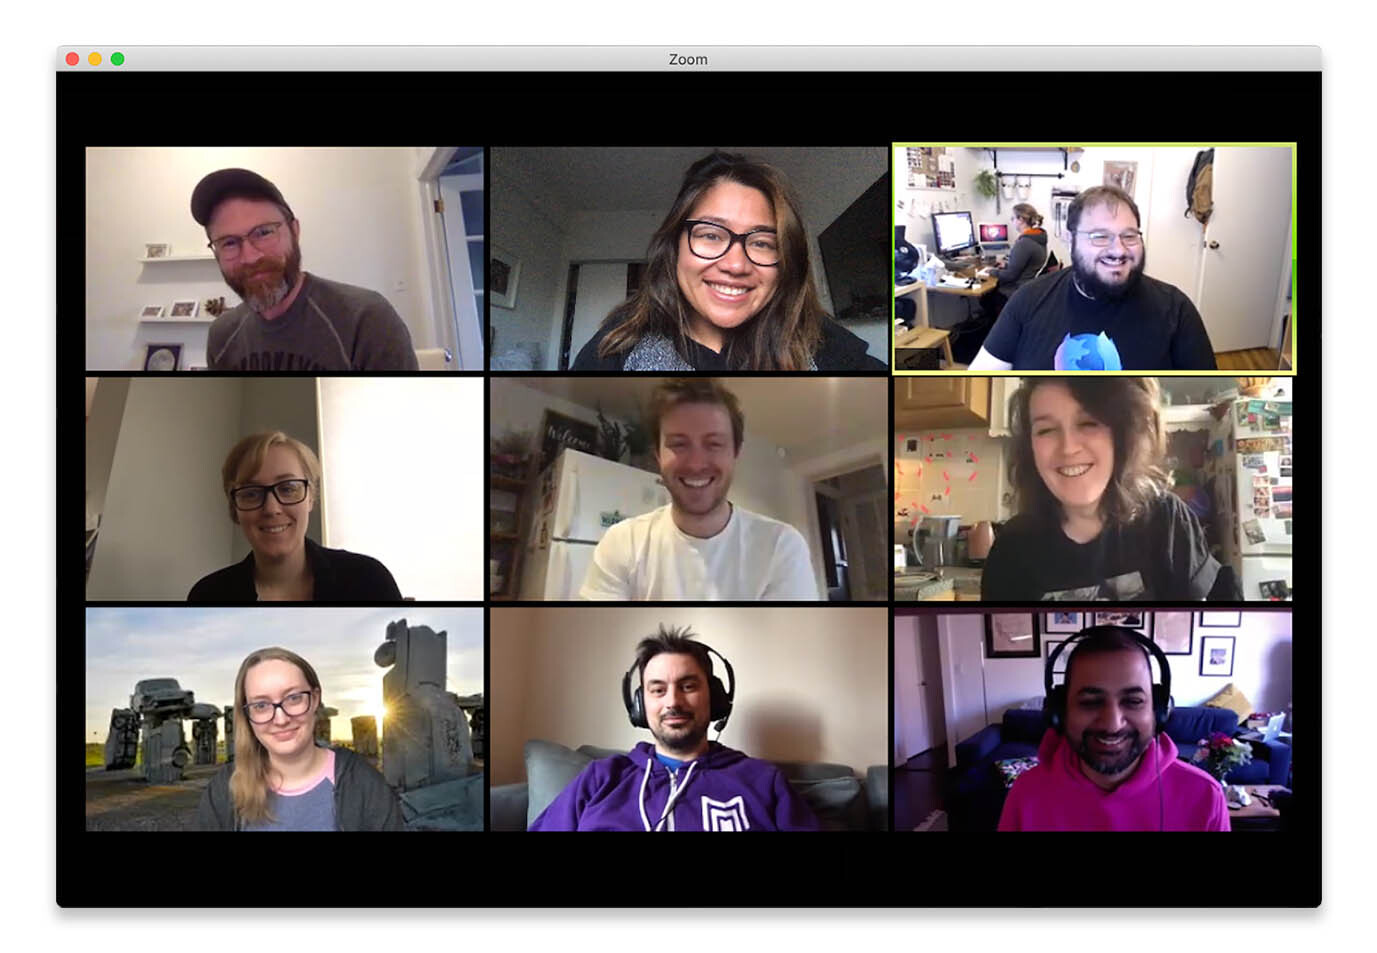 A remote meeting at Glitch takes place over Zoom